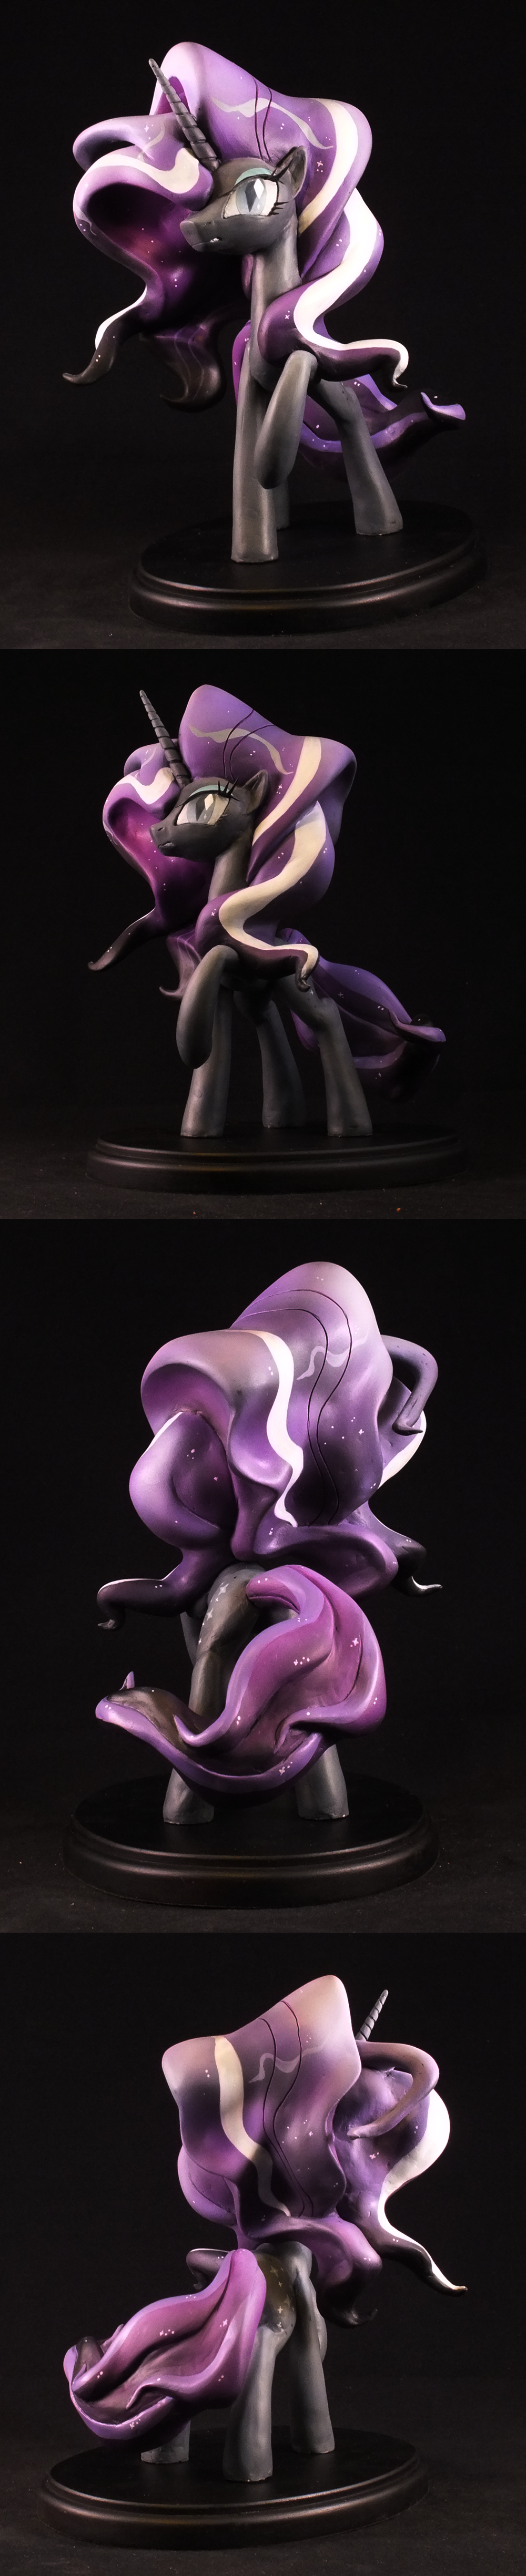 Nightmare Rarity - Spin by frozenpyro71